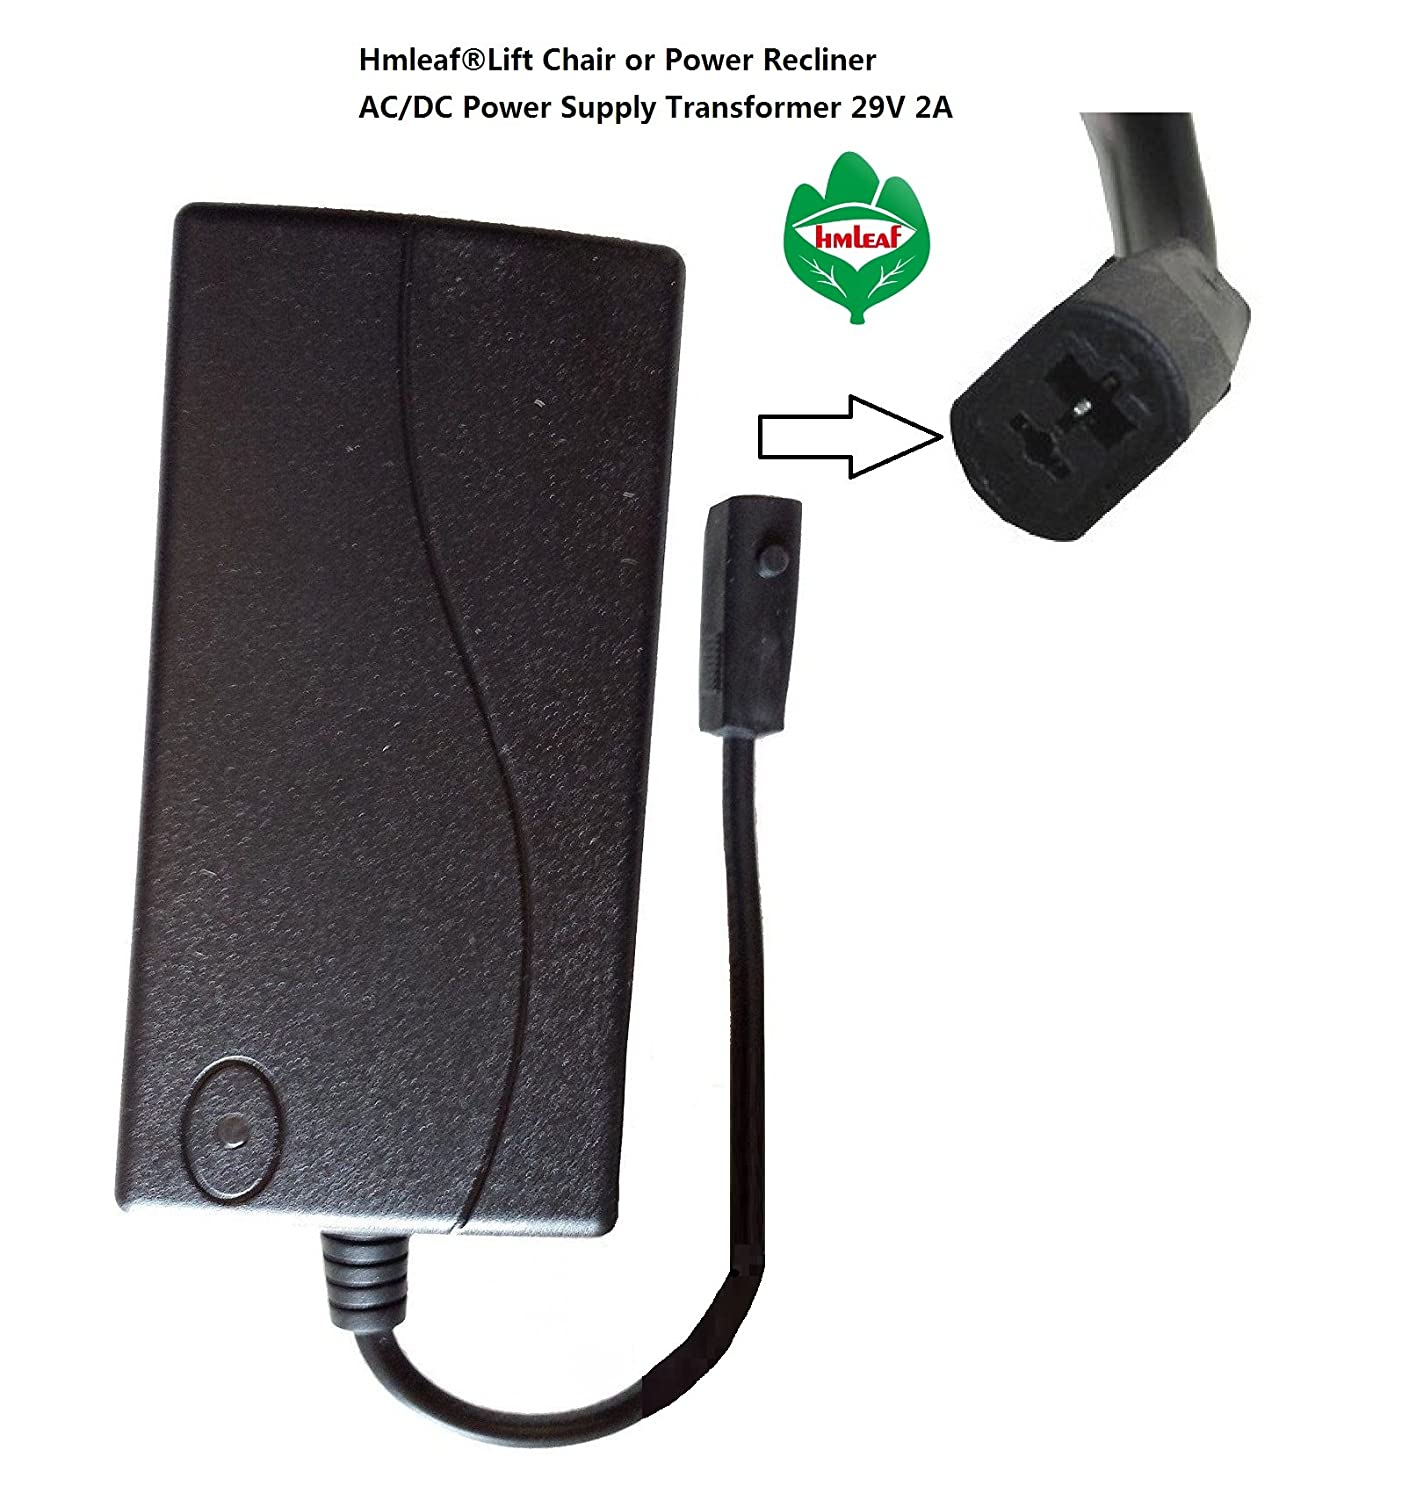 Amazon.com Hmleaf Lift Chair or Power Recliner AC/DC Switching Power Supply Transformer 29V 2A+6 feet SP2-B Power Wall Cord Kitchen u0026 Dining  sc 1 st  Amazon.com & Amazon.com: Hmleaf Lift Chair or Power Recliner AC/DC Switching ...